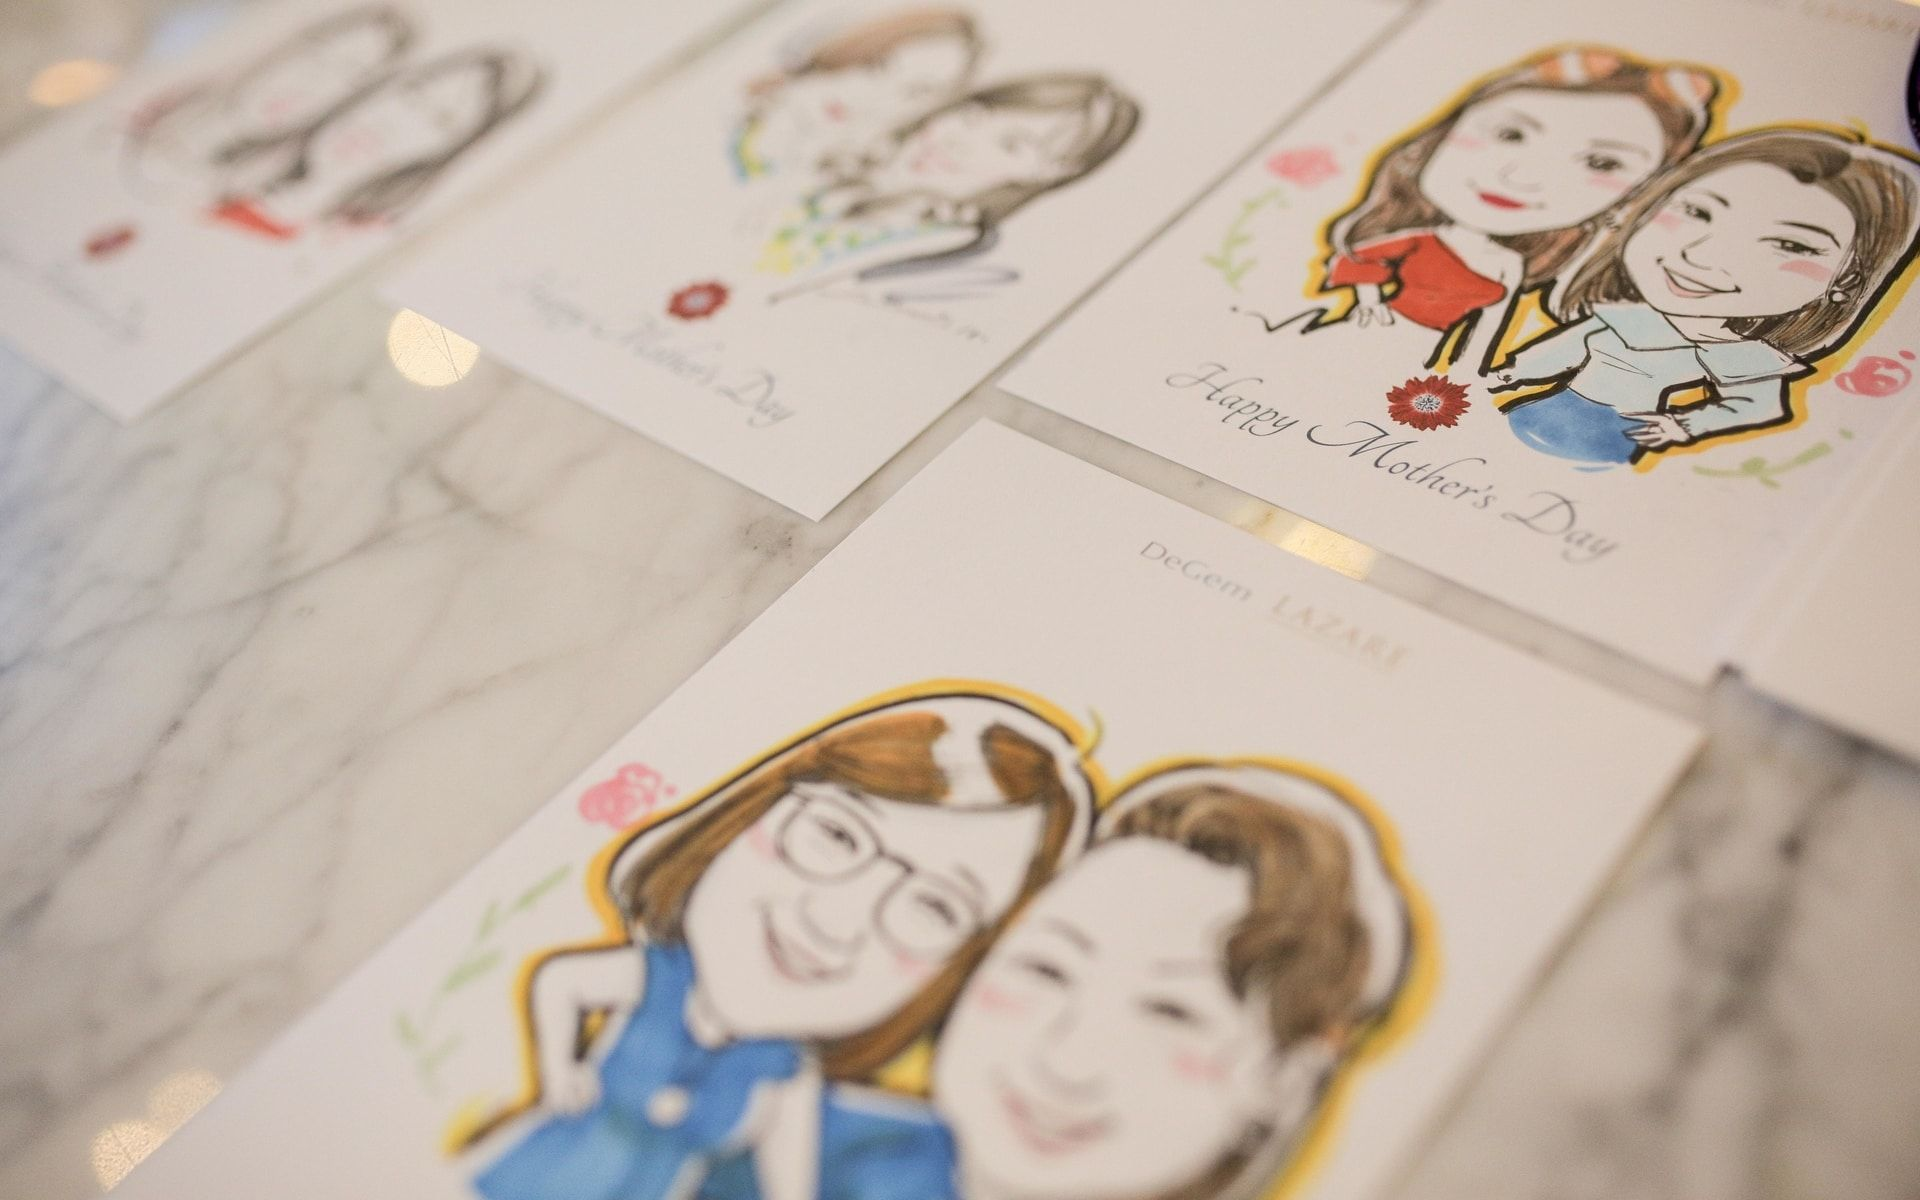 Caricatures by Pocotee Loh